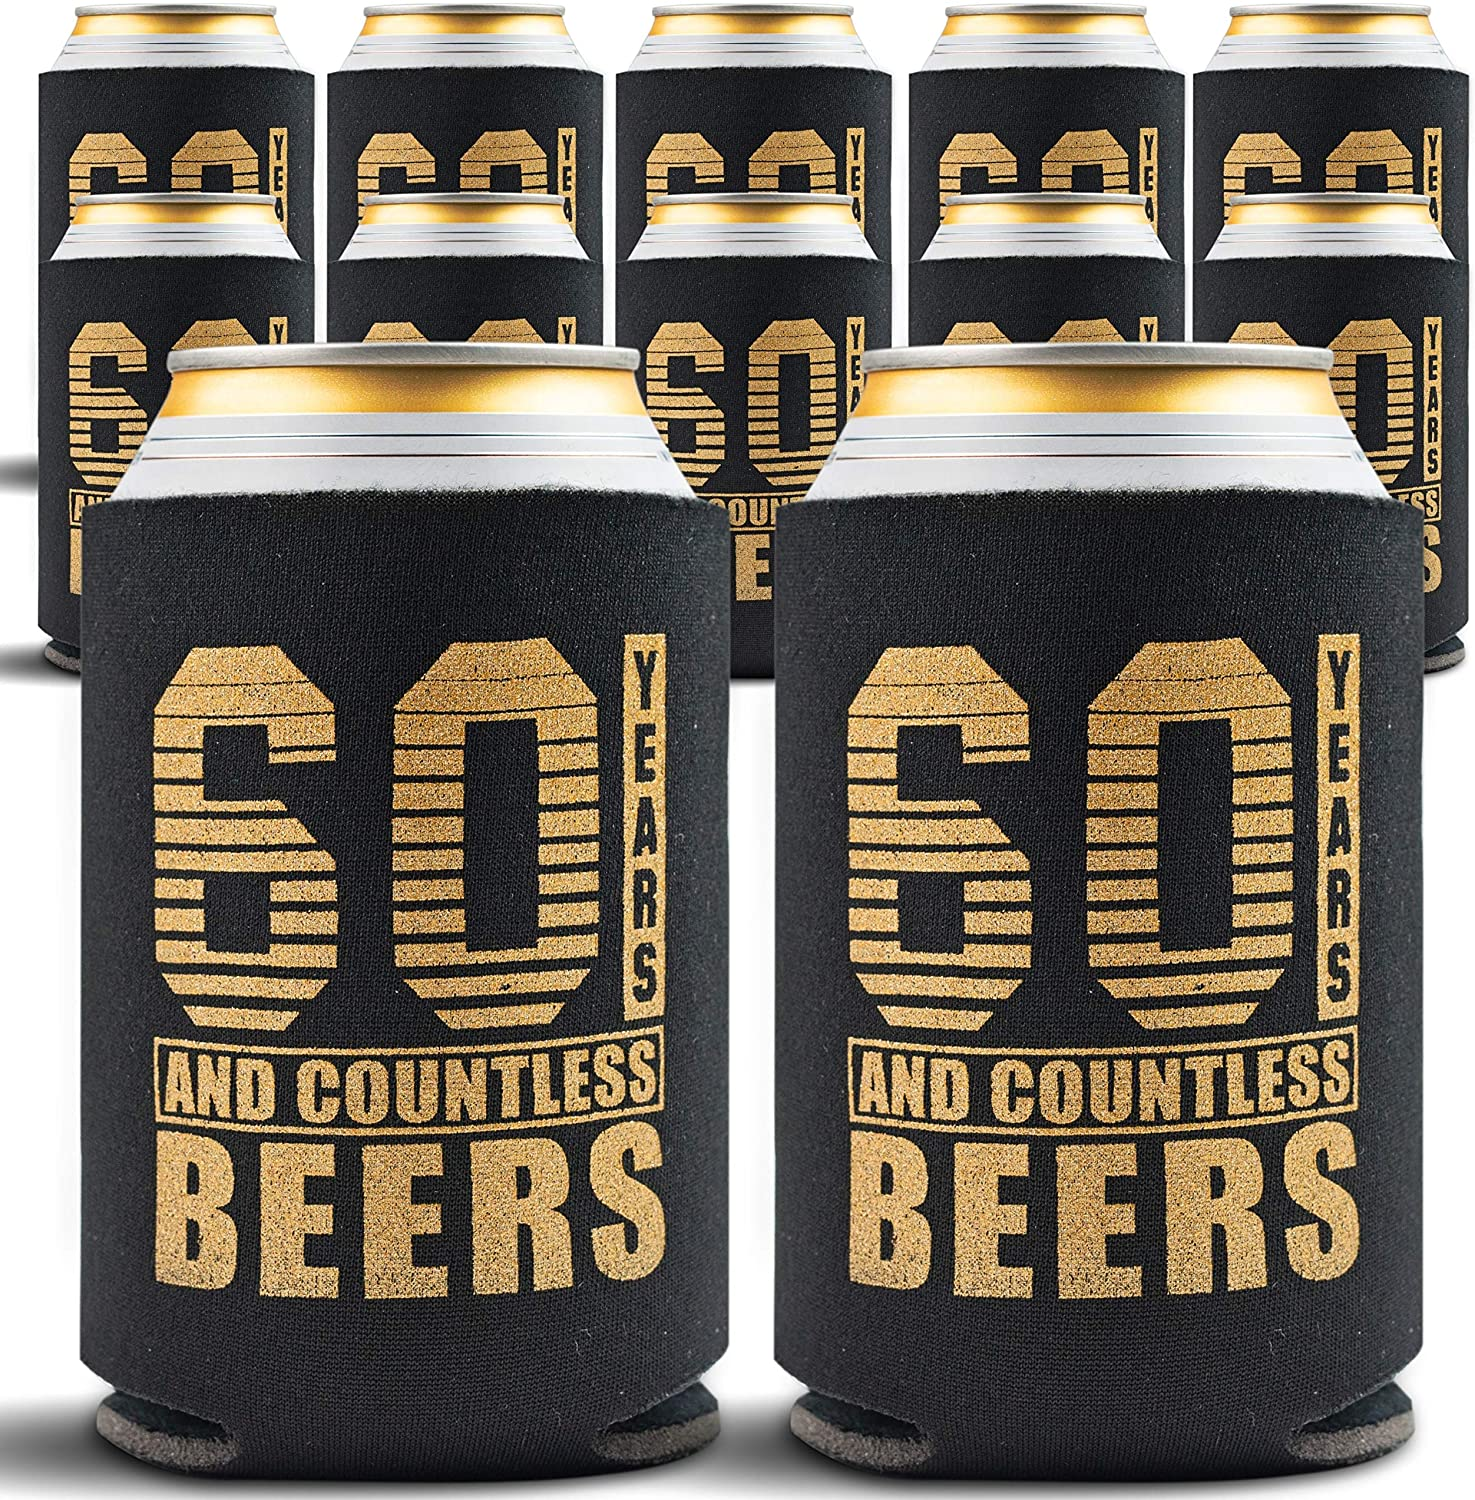 60th Birthday Decorations Beverage Can Coolers 60th Birthday Gift Ideas Beer Sleeve Insulated Drink Holder Party Favors 60 Year Old Birthday Gifts For Men Women 12 Pack Black